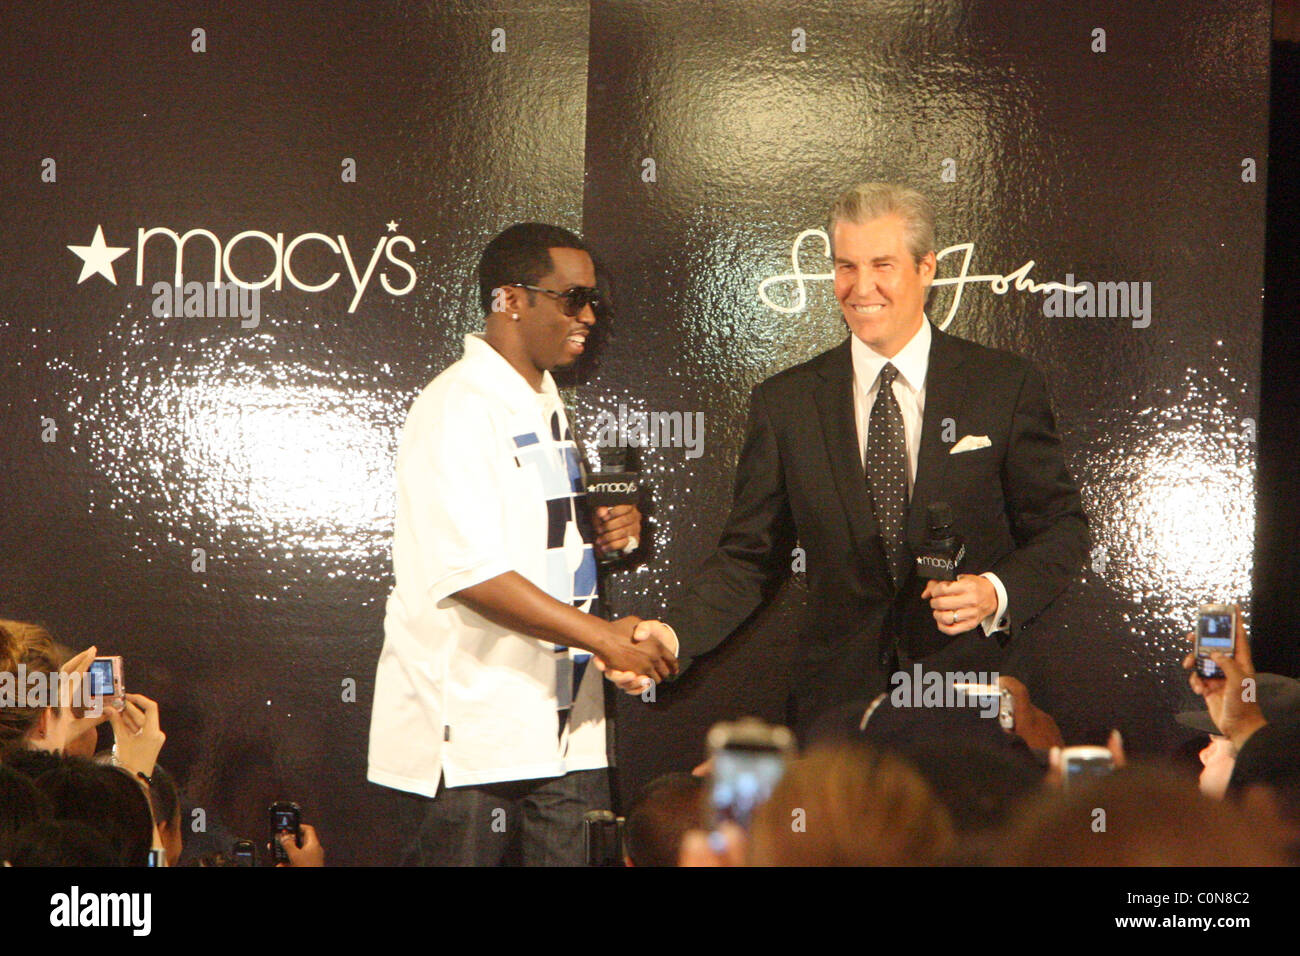 Sean Combs Mercedes Benz Fashion Week Stock Photos & Sean Combs